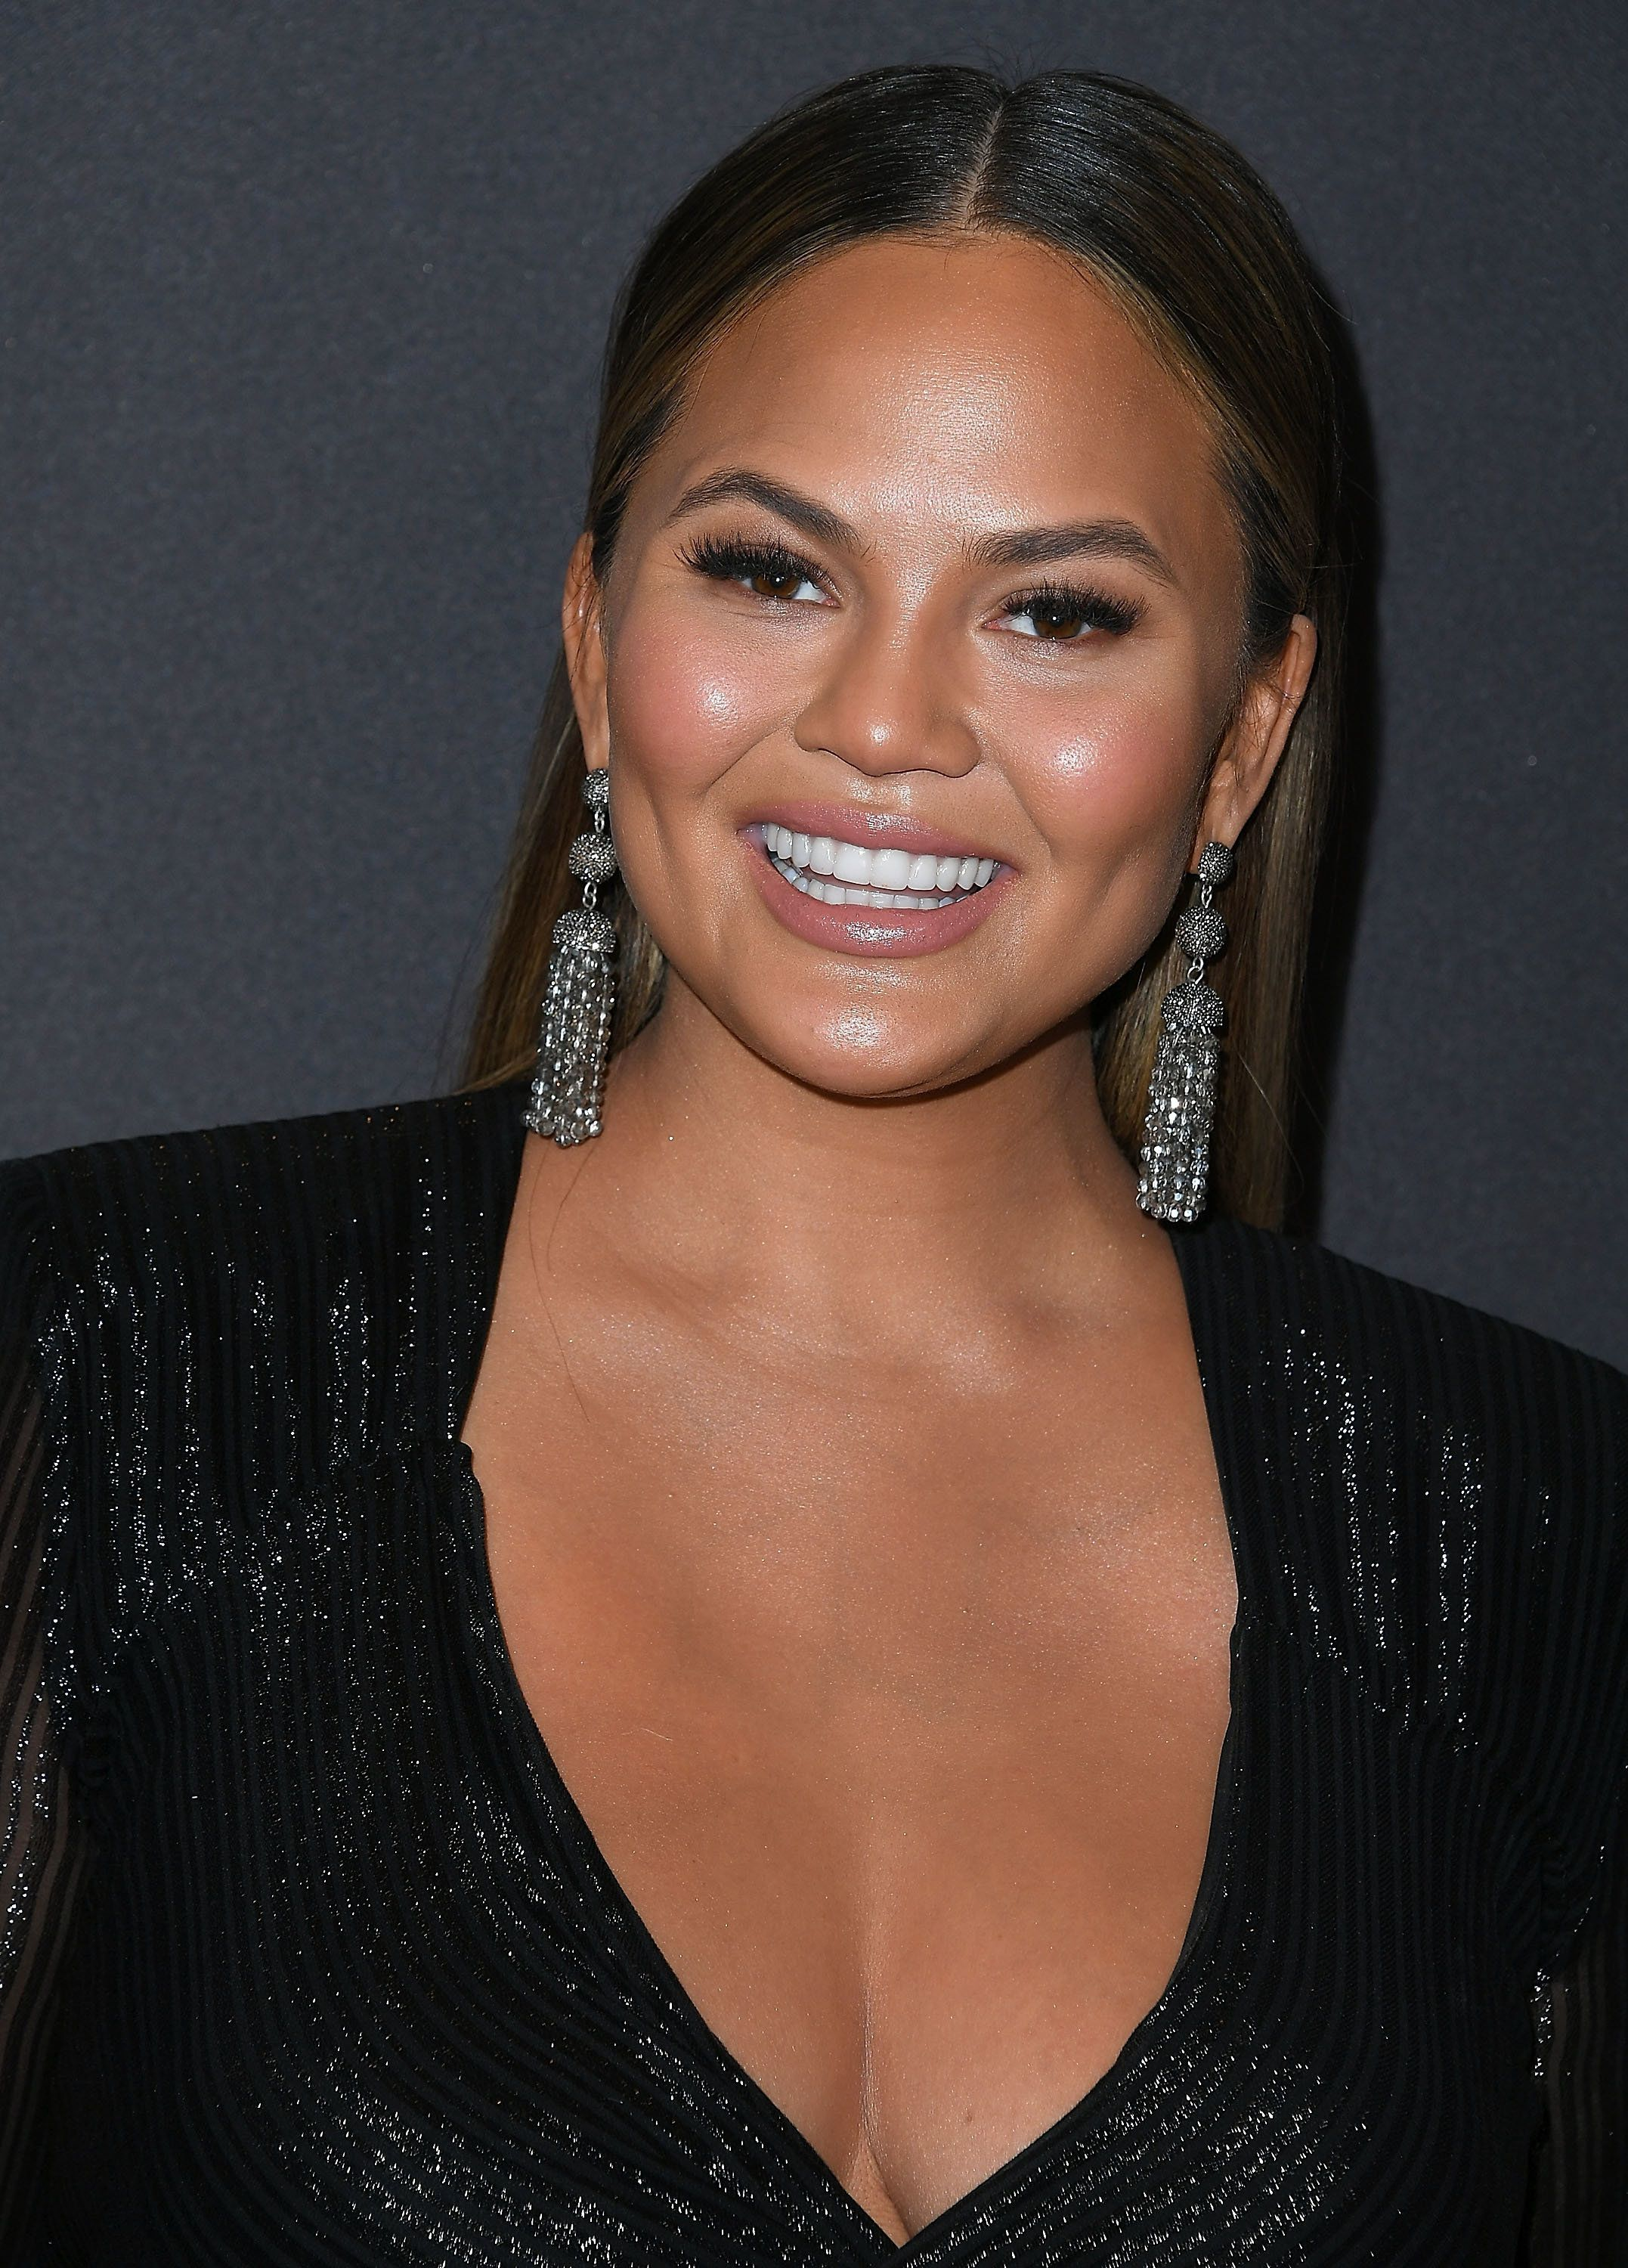 HOLLYWOOD, CA - JANUARY 18:  Chrissy Teigen arrives at the Lip Sync Battle LIVE: A Michael Jackson Celebration at Dolby Theatre on January 18, 2018 in Hollywood, California.  (Photo by Steve Granitz/WireImage)